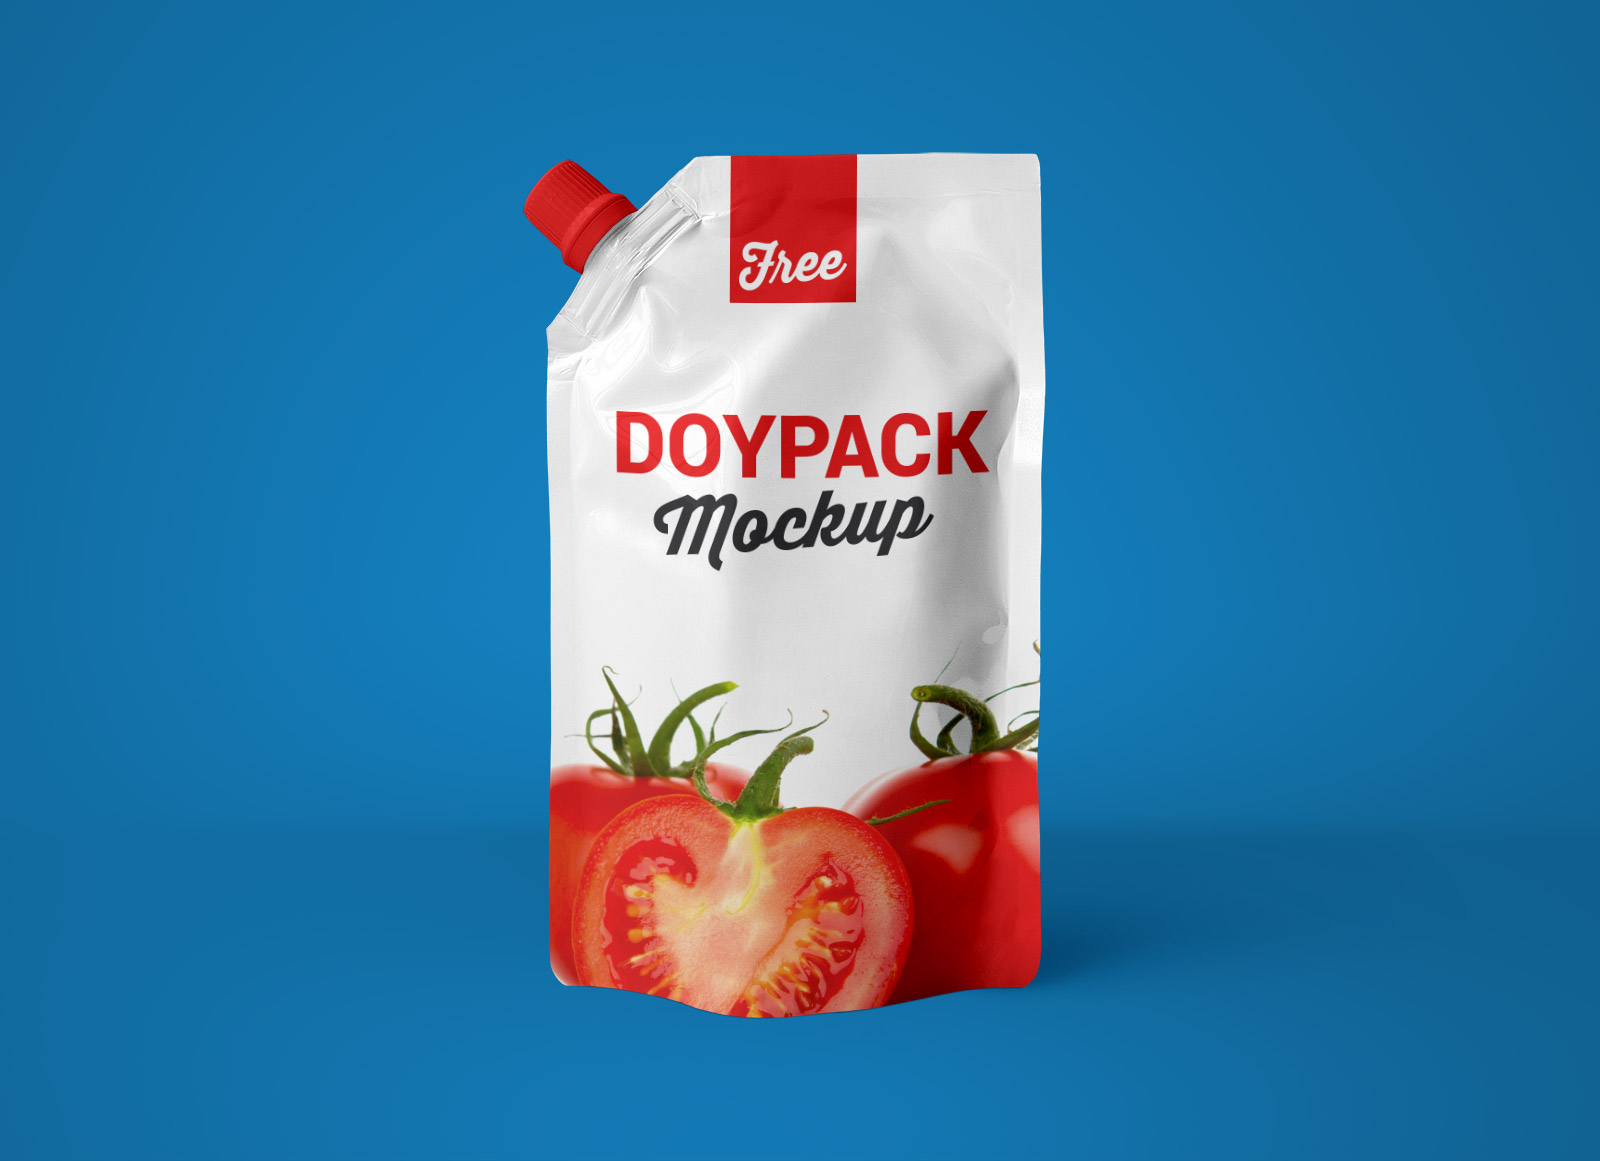 Free-Doypack-Stand-Up-Pouch-Packaging-Mockup-PSD